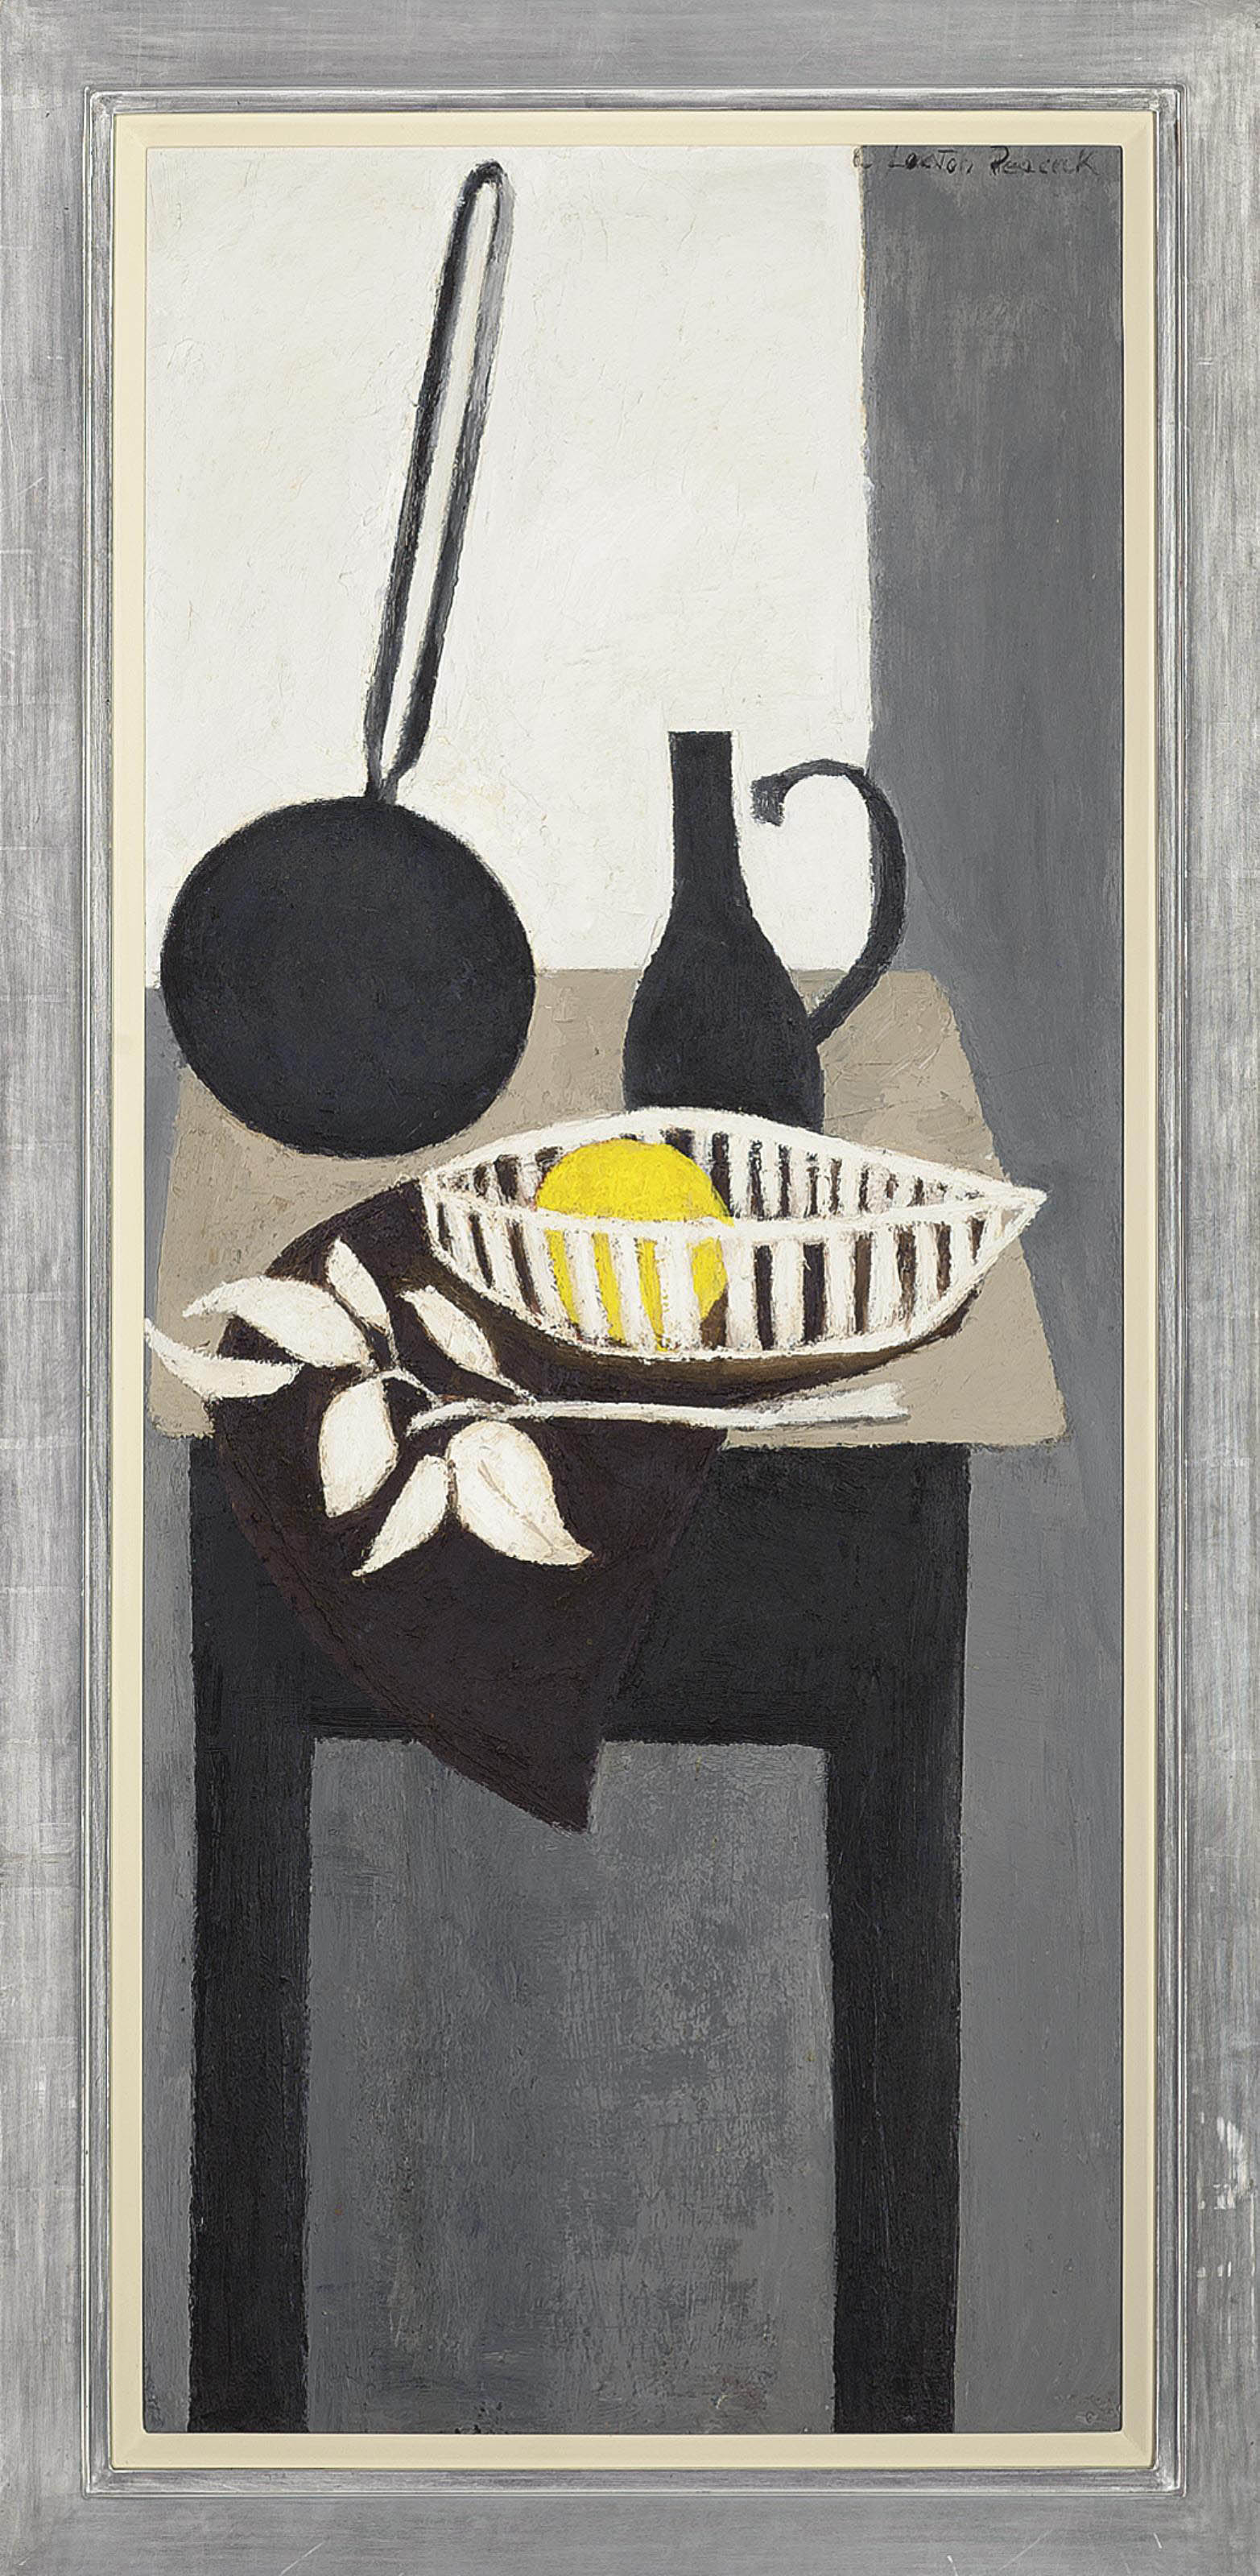 A long-handled frying pan, pitcher and a grapefruit in a basket, on a table